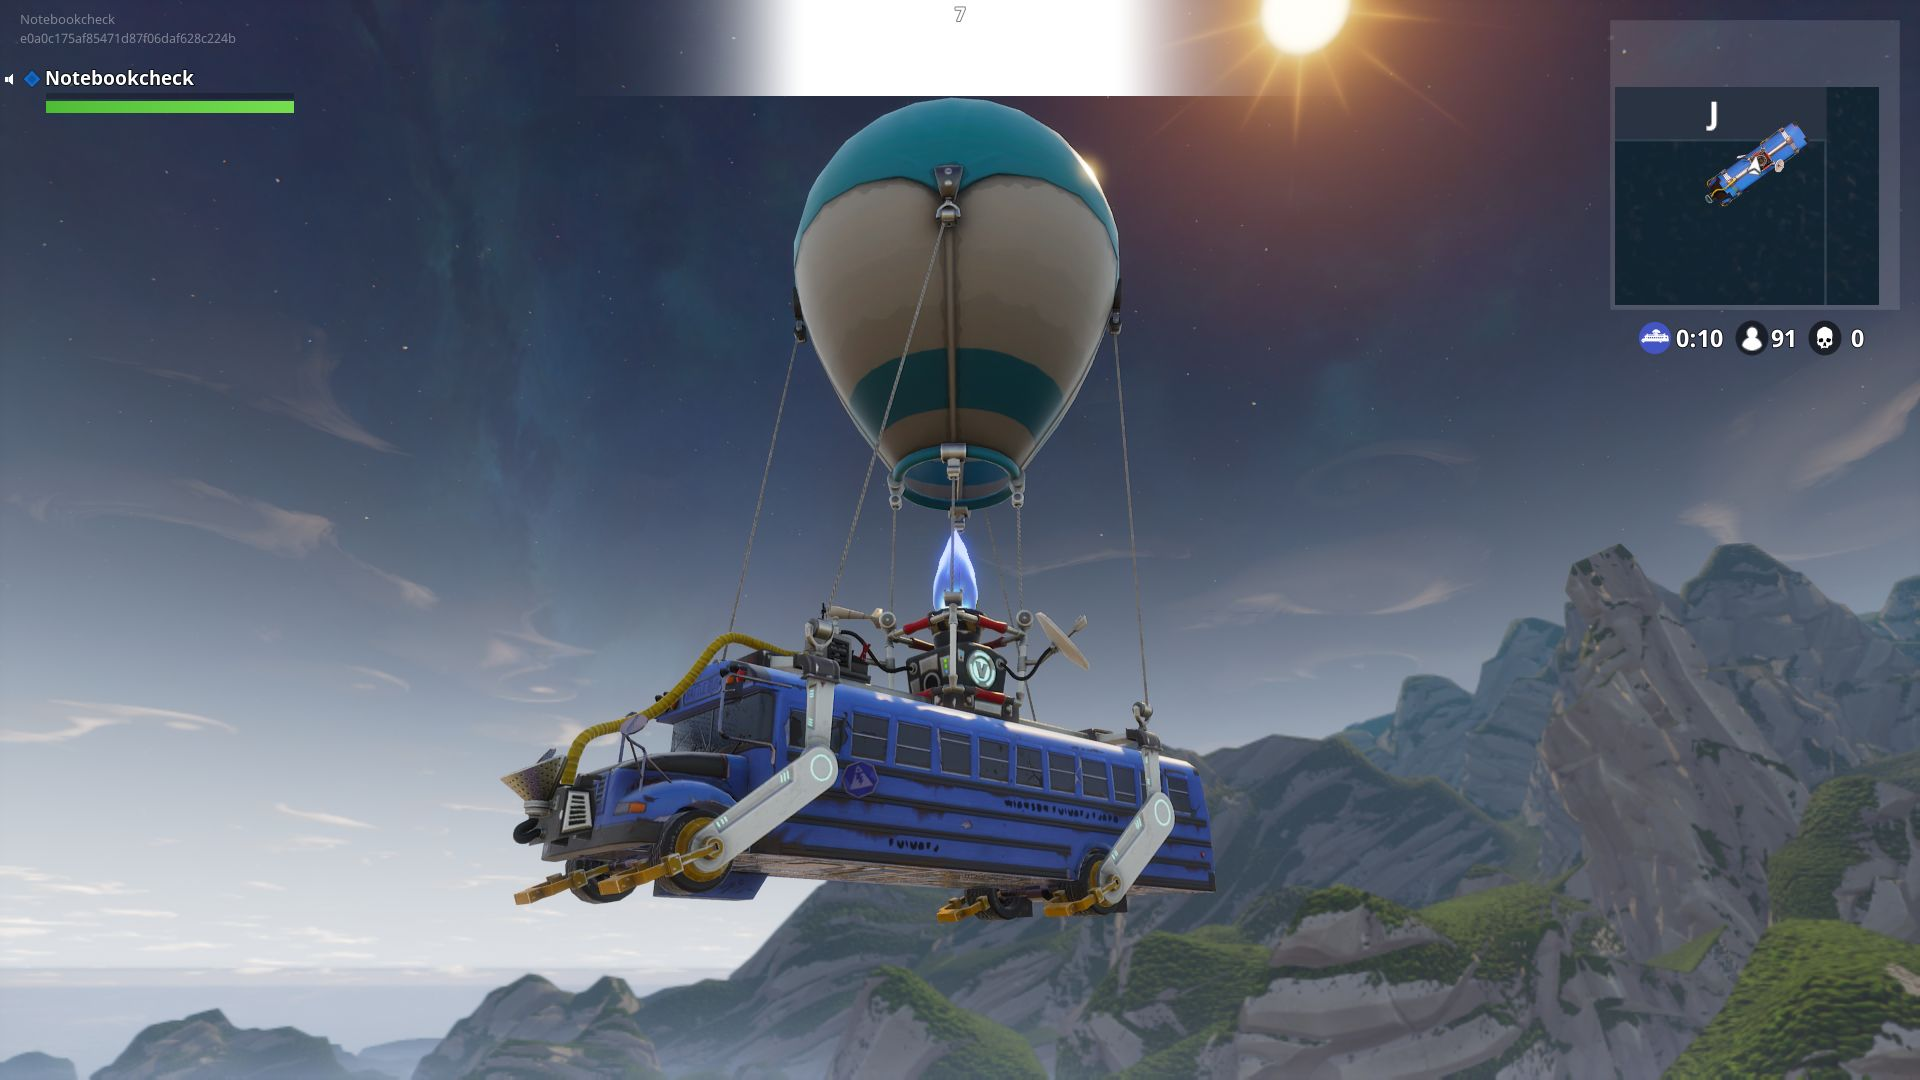 Fortnite Wallpaper Falling From The Sky Fortnite Notebook And Desktop Benchmarks Notebookcheck